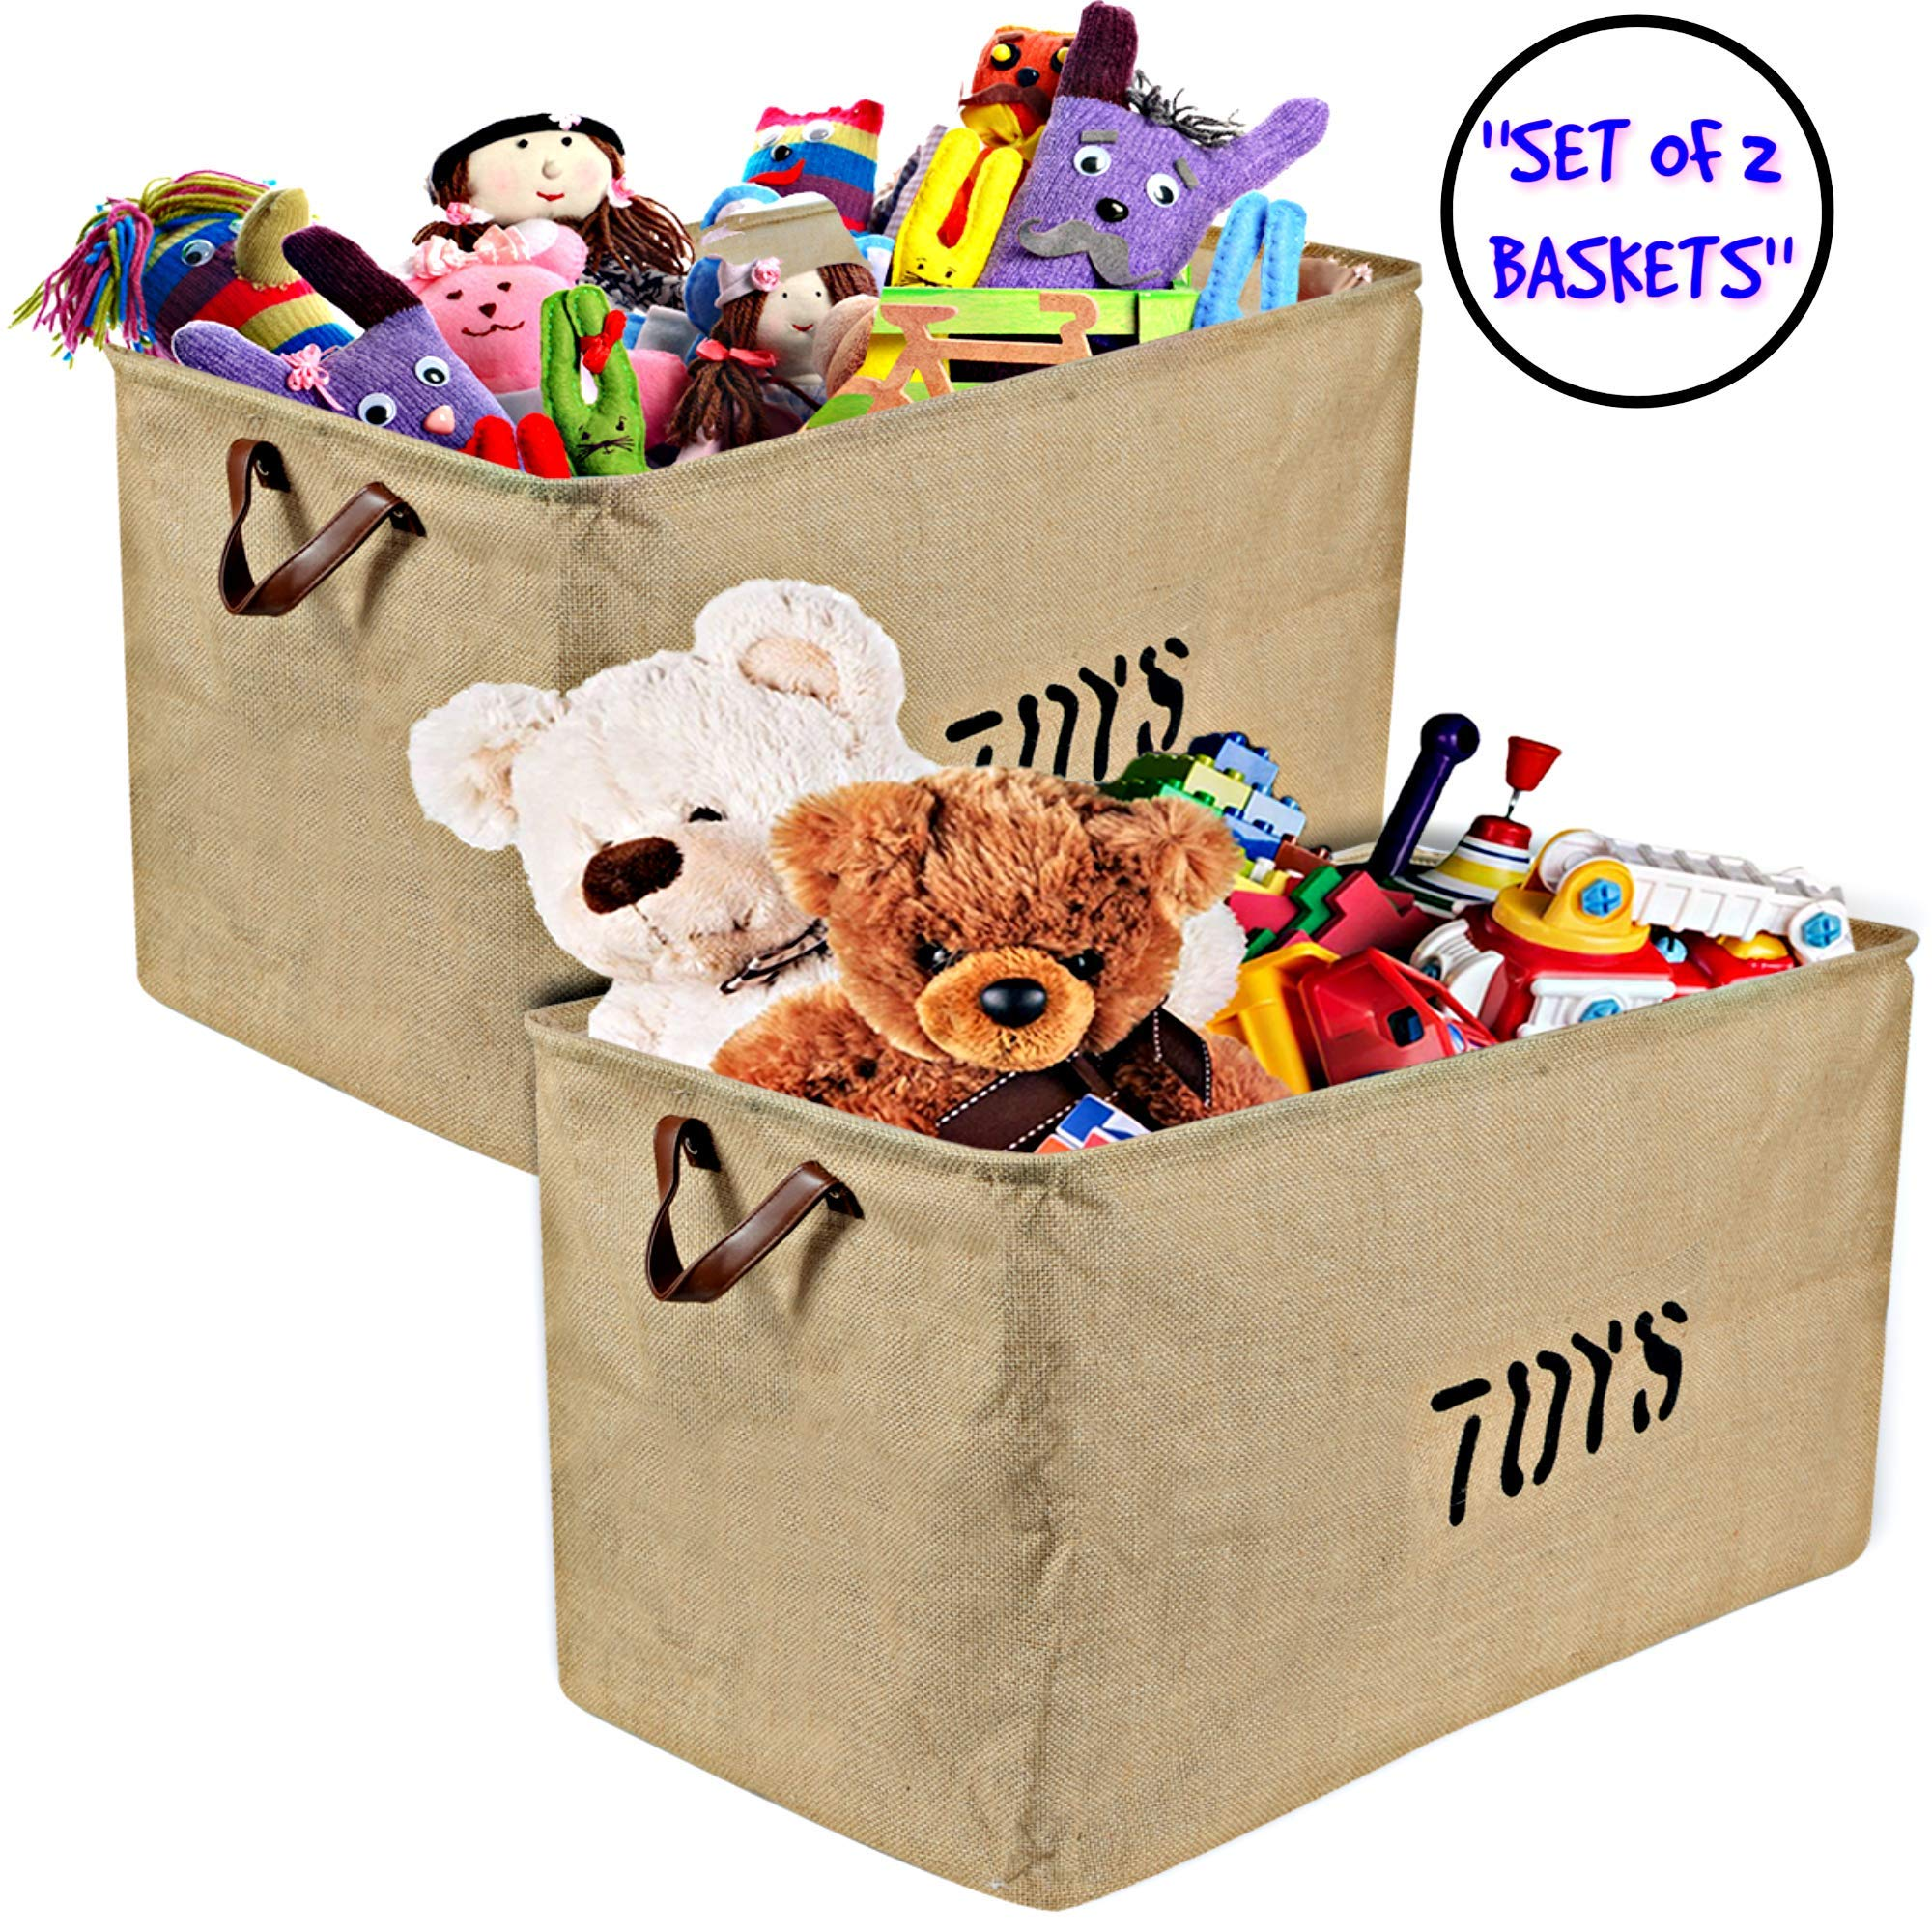 Woffit Set of 2 Toy Storage Organizer Baskets for Nursery, Playroom, Kids & Living Room, Etc, Extra Large Sturdy and Collapsible Tote Bins for Children & Dog Toys Great Chest Box for Boys & Girls by Woffit